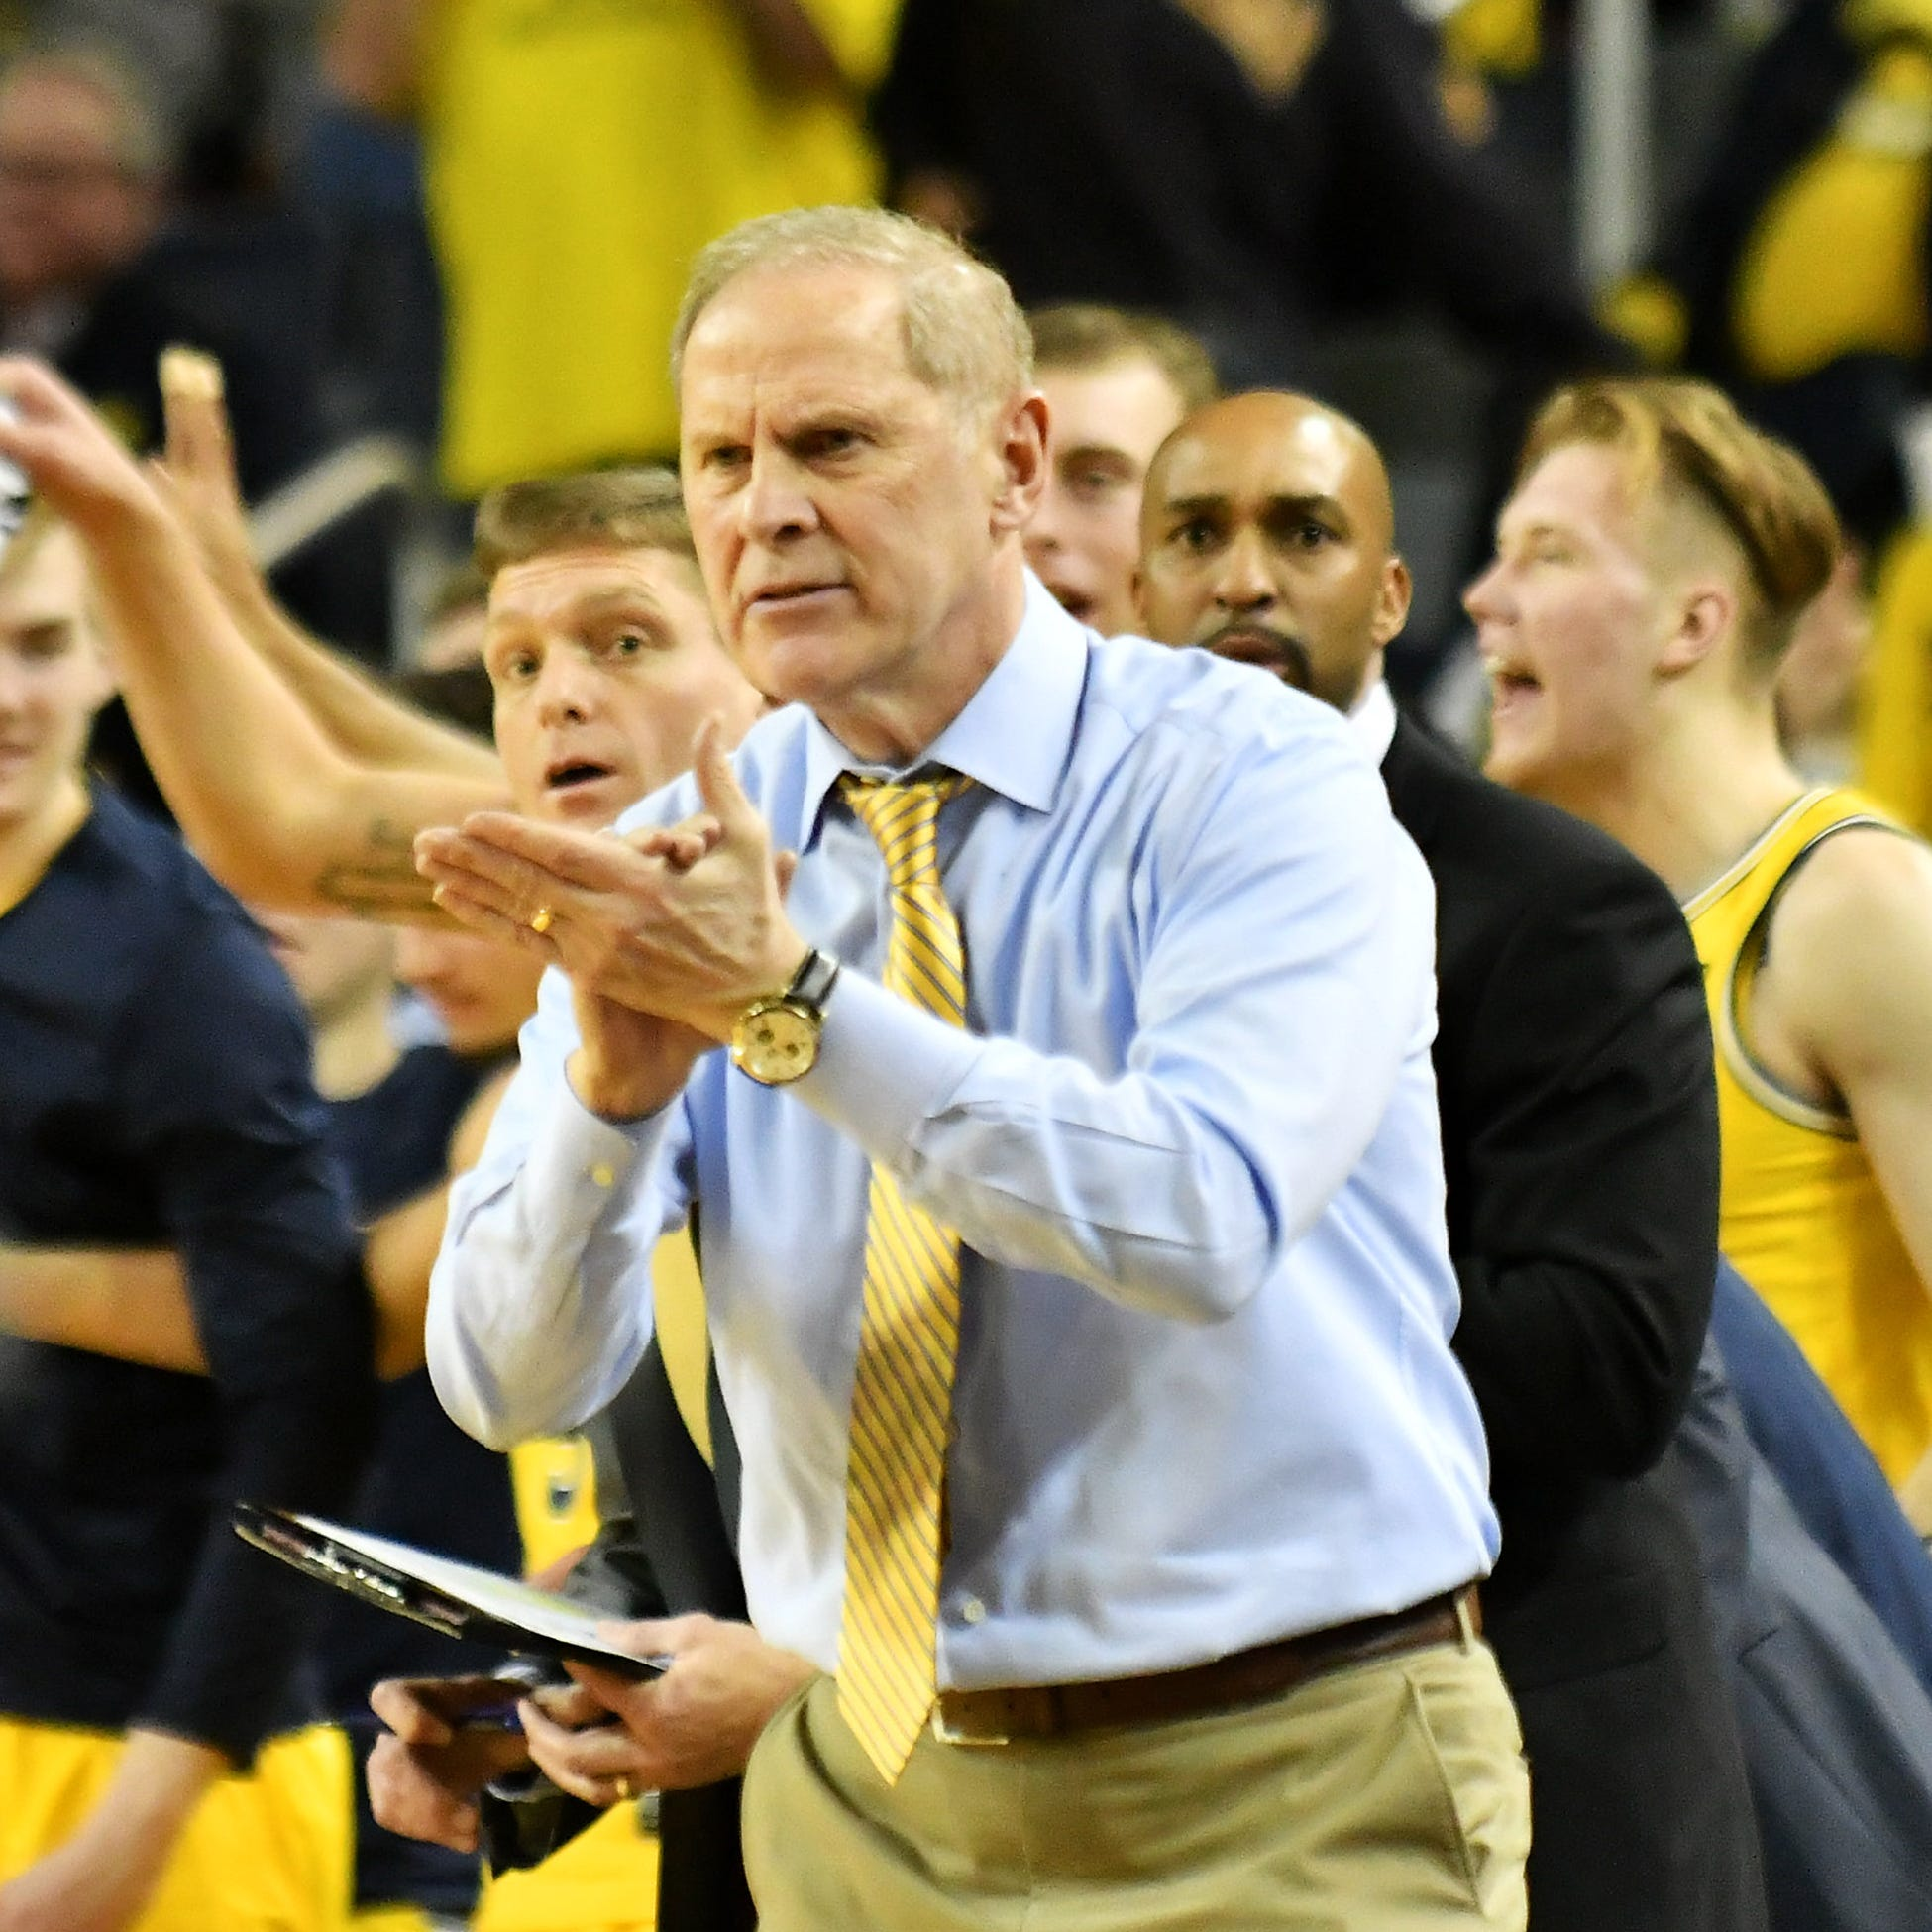 Former players: John Beilein made excellence the standard at Michigan